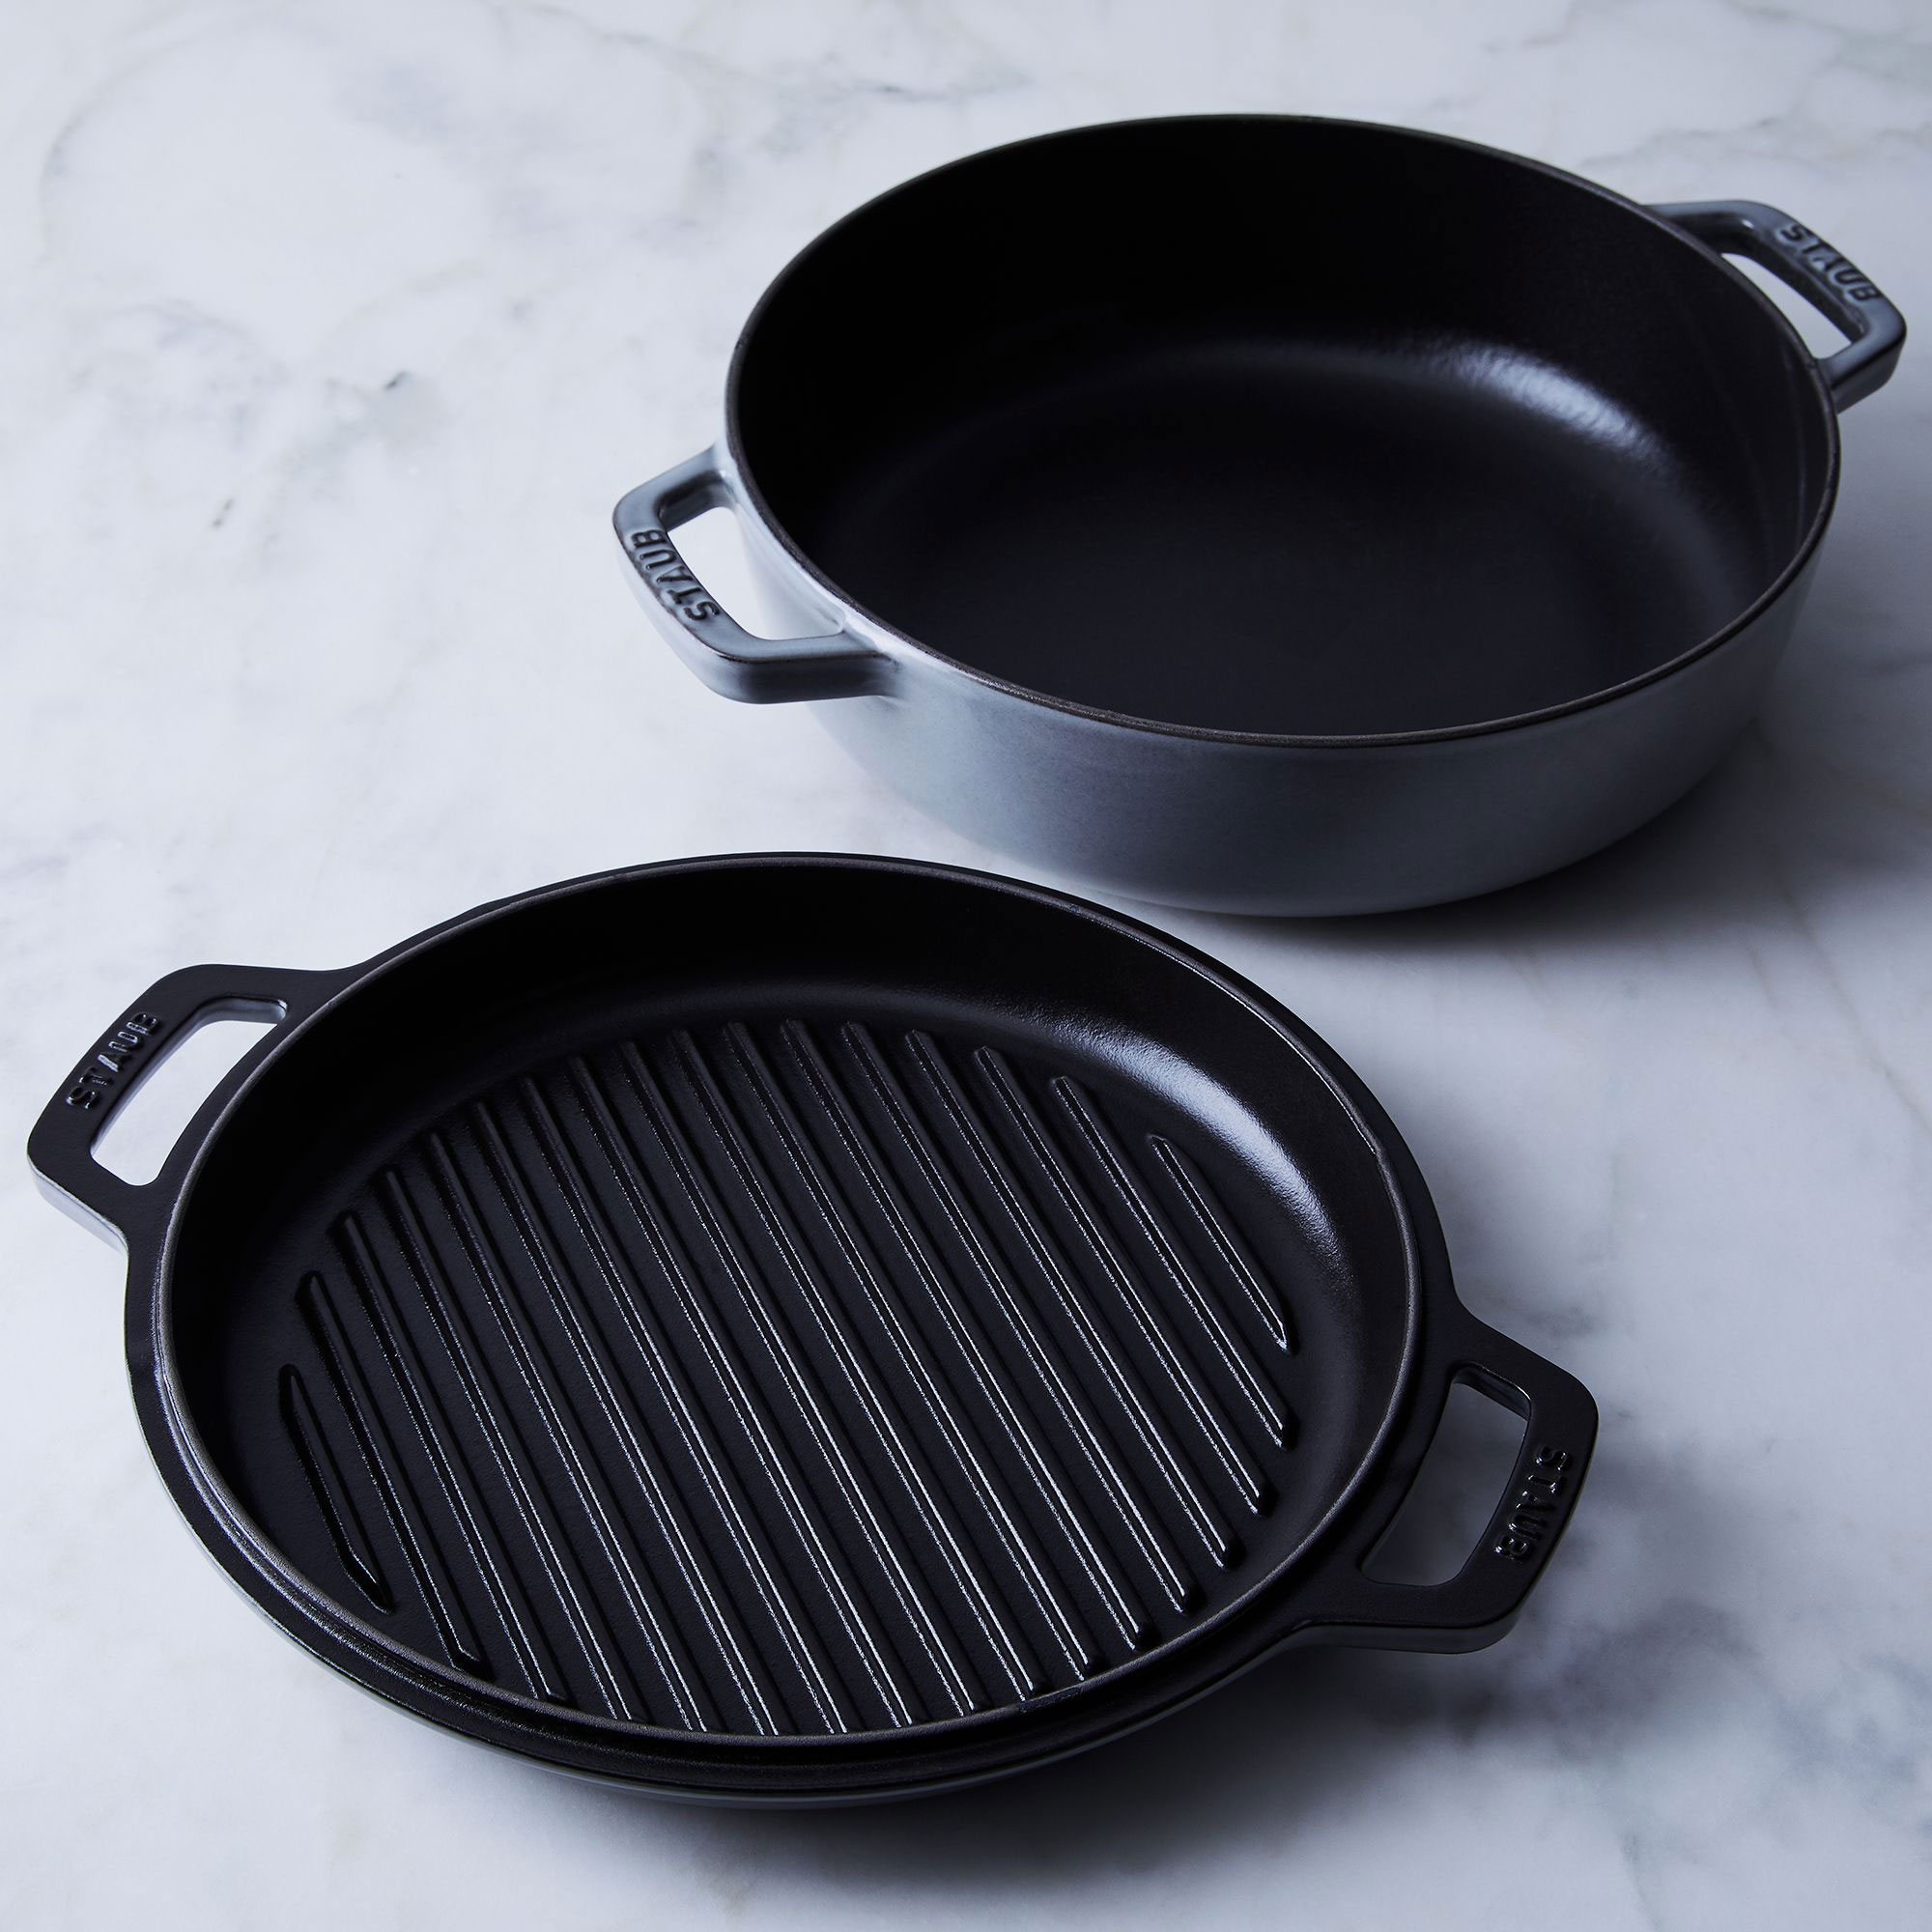 Food52 & Staub's 2-in-1 Grill Pan & Cocotte